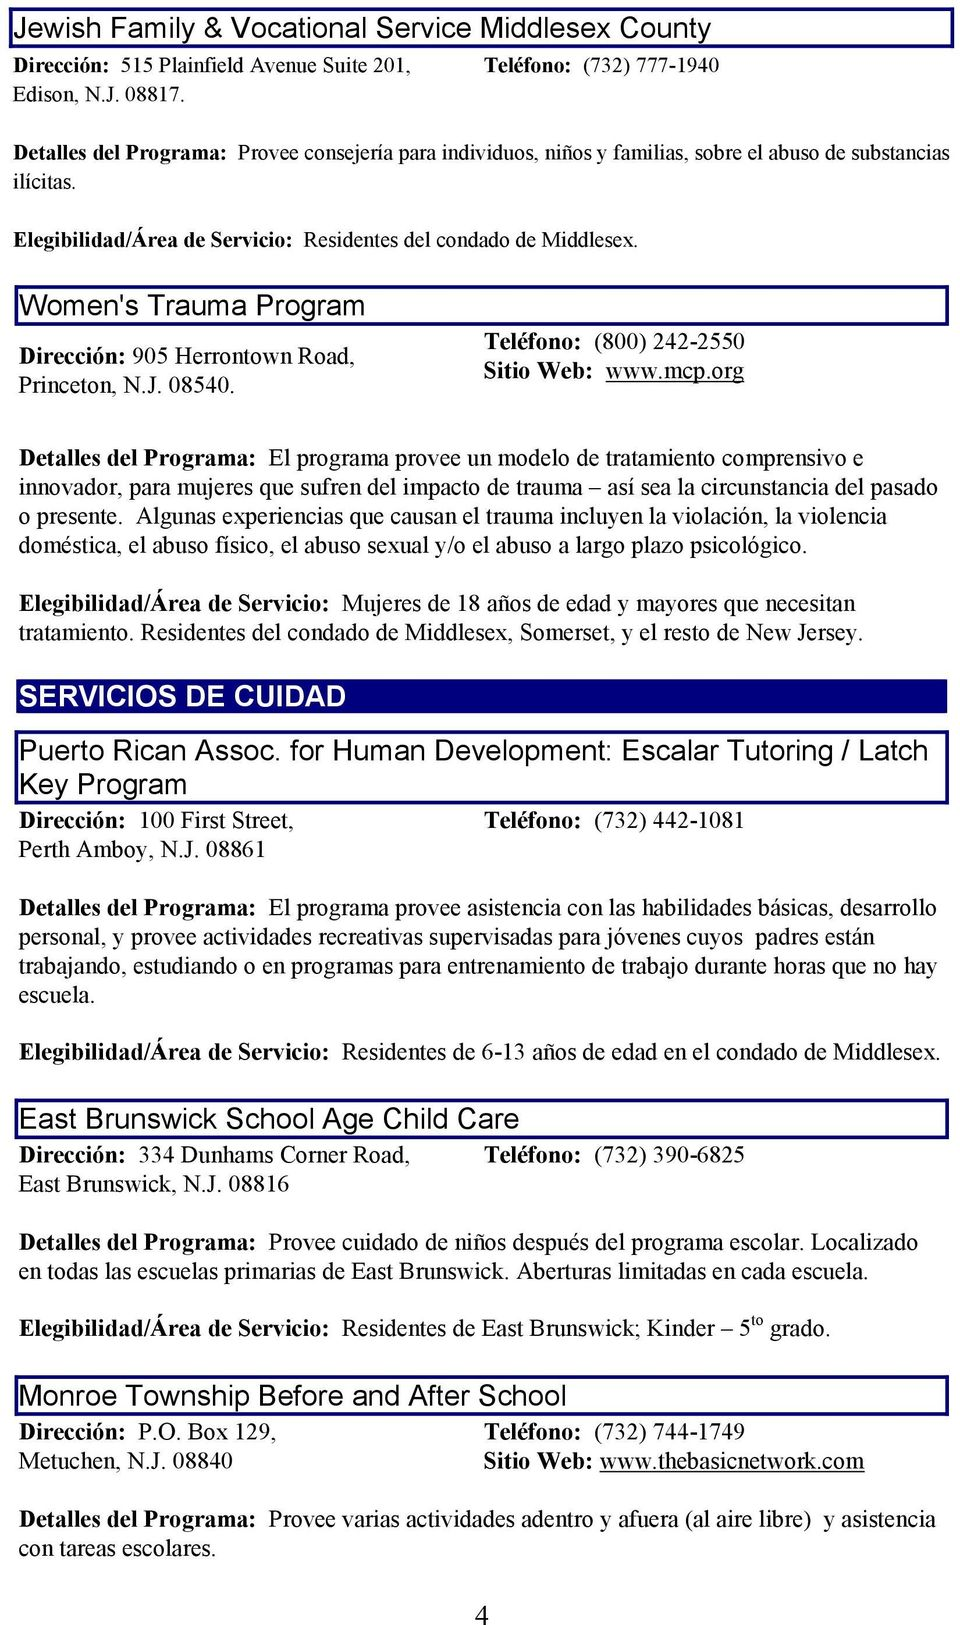 Catholic Charities Family Preservation Services-Edison/Fords - PDF